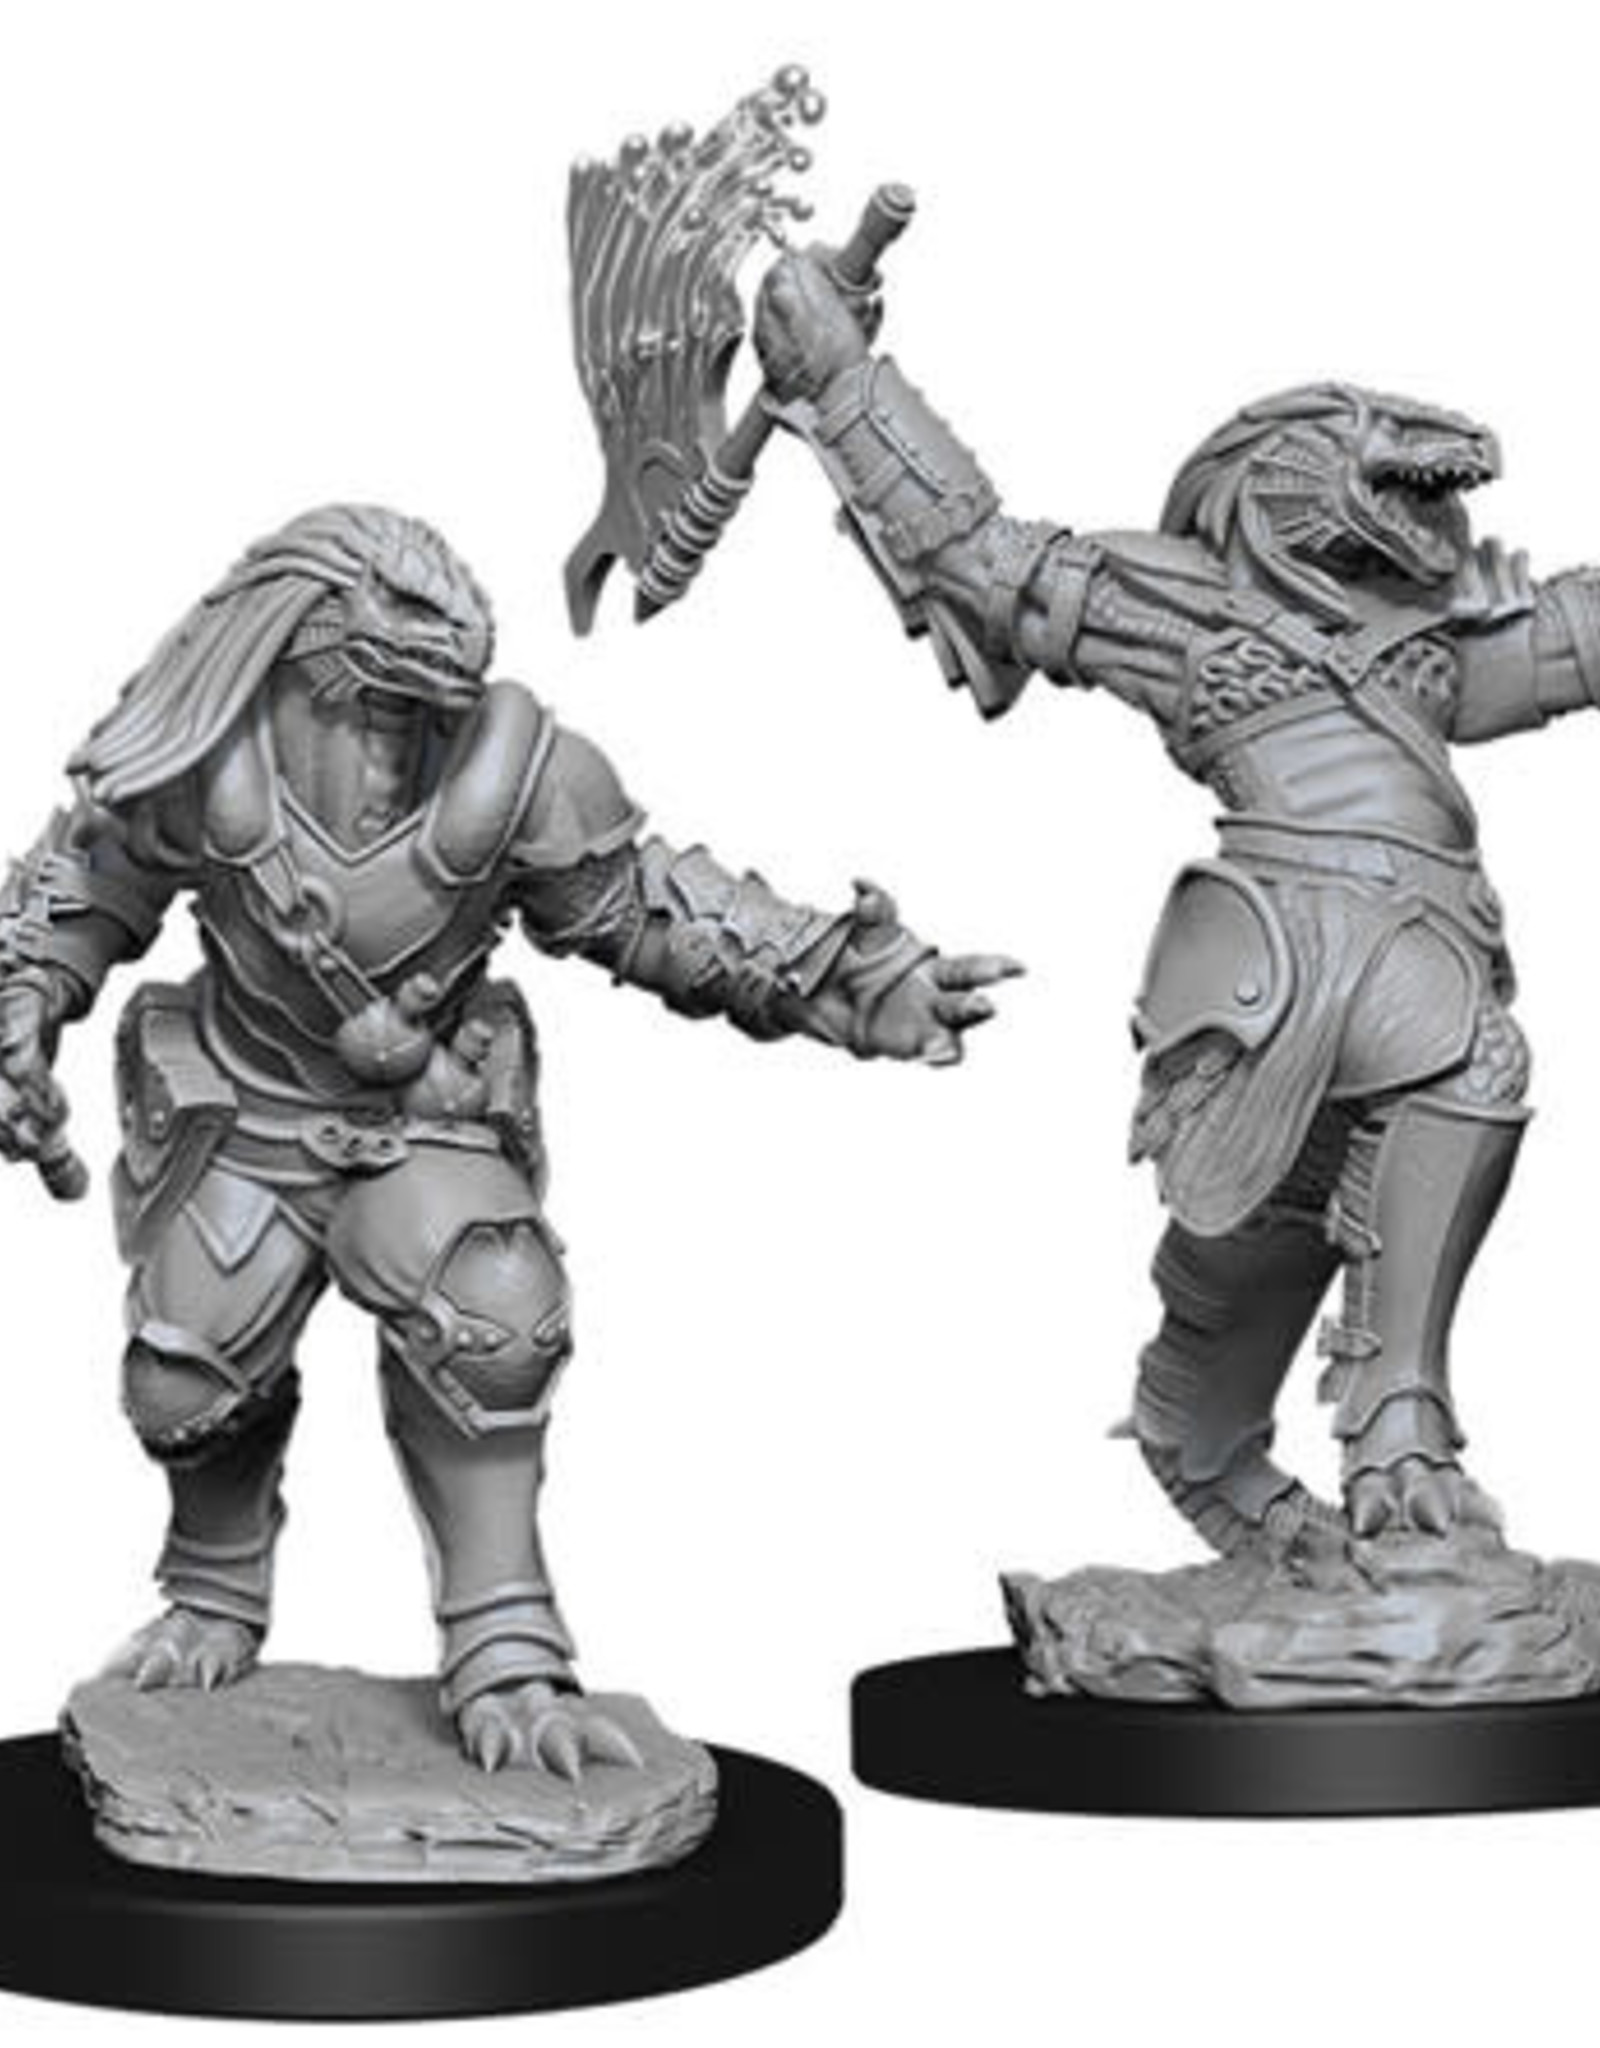 WizKids D&D Nolzur Dragonborn Fighter (She/Her/They/Them)